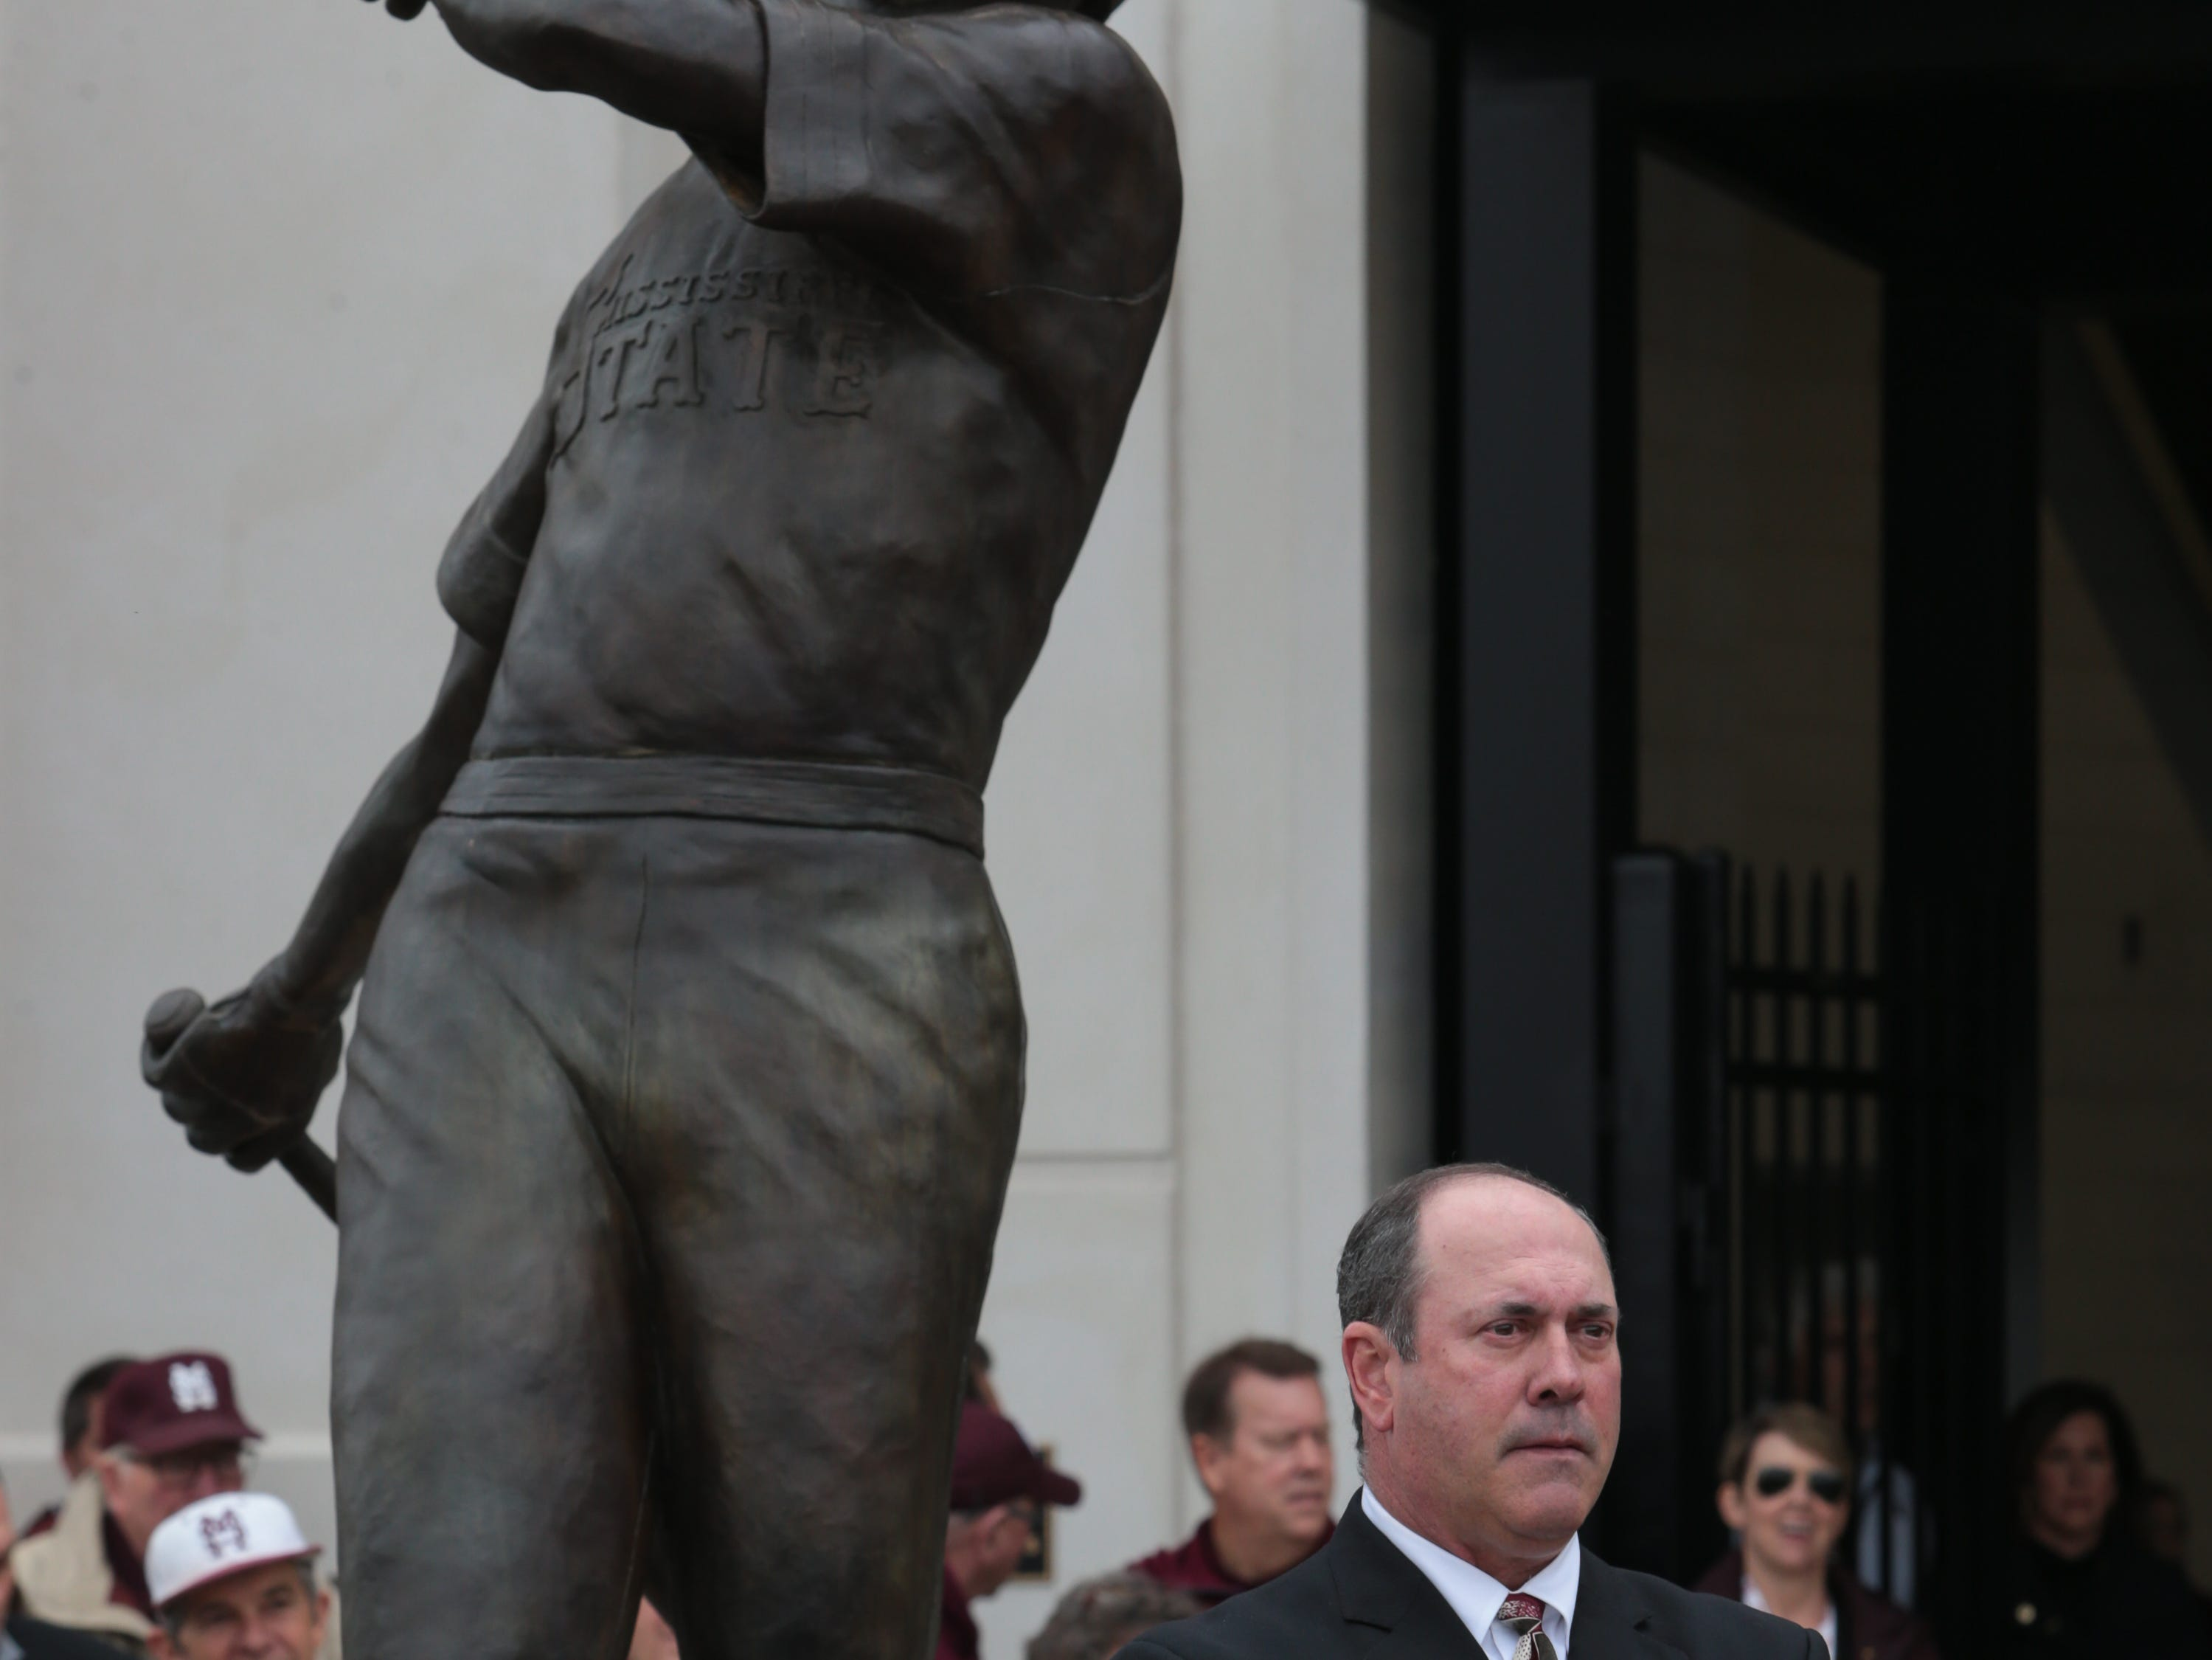 Will Clark stands in front a statue commemorating his time at MSU. Mississippi State opened the 2019 baseball season against Youngstown State on Friday, February 15, 2019. Photo by Keith Warren